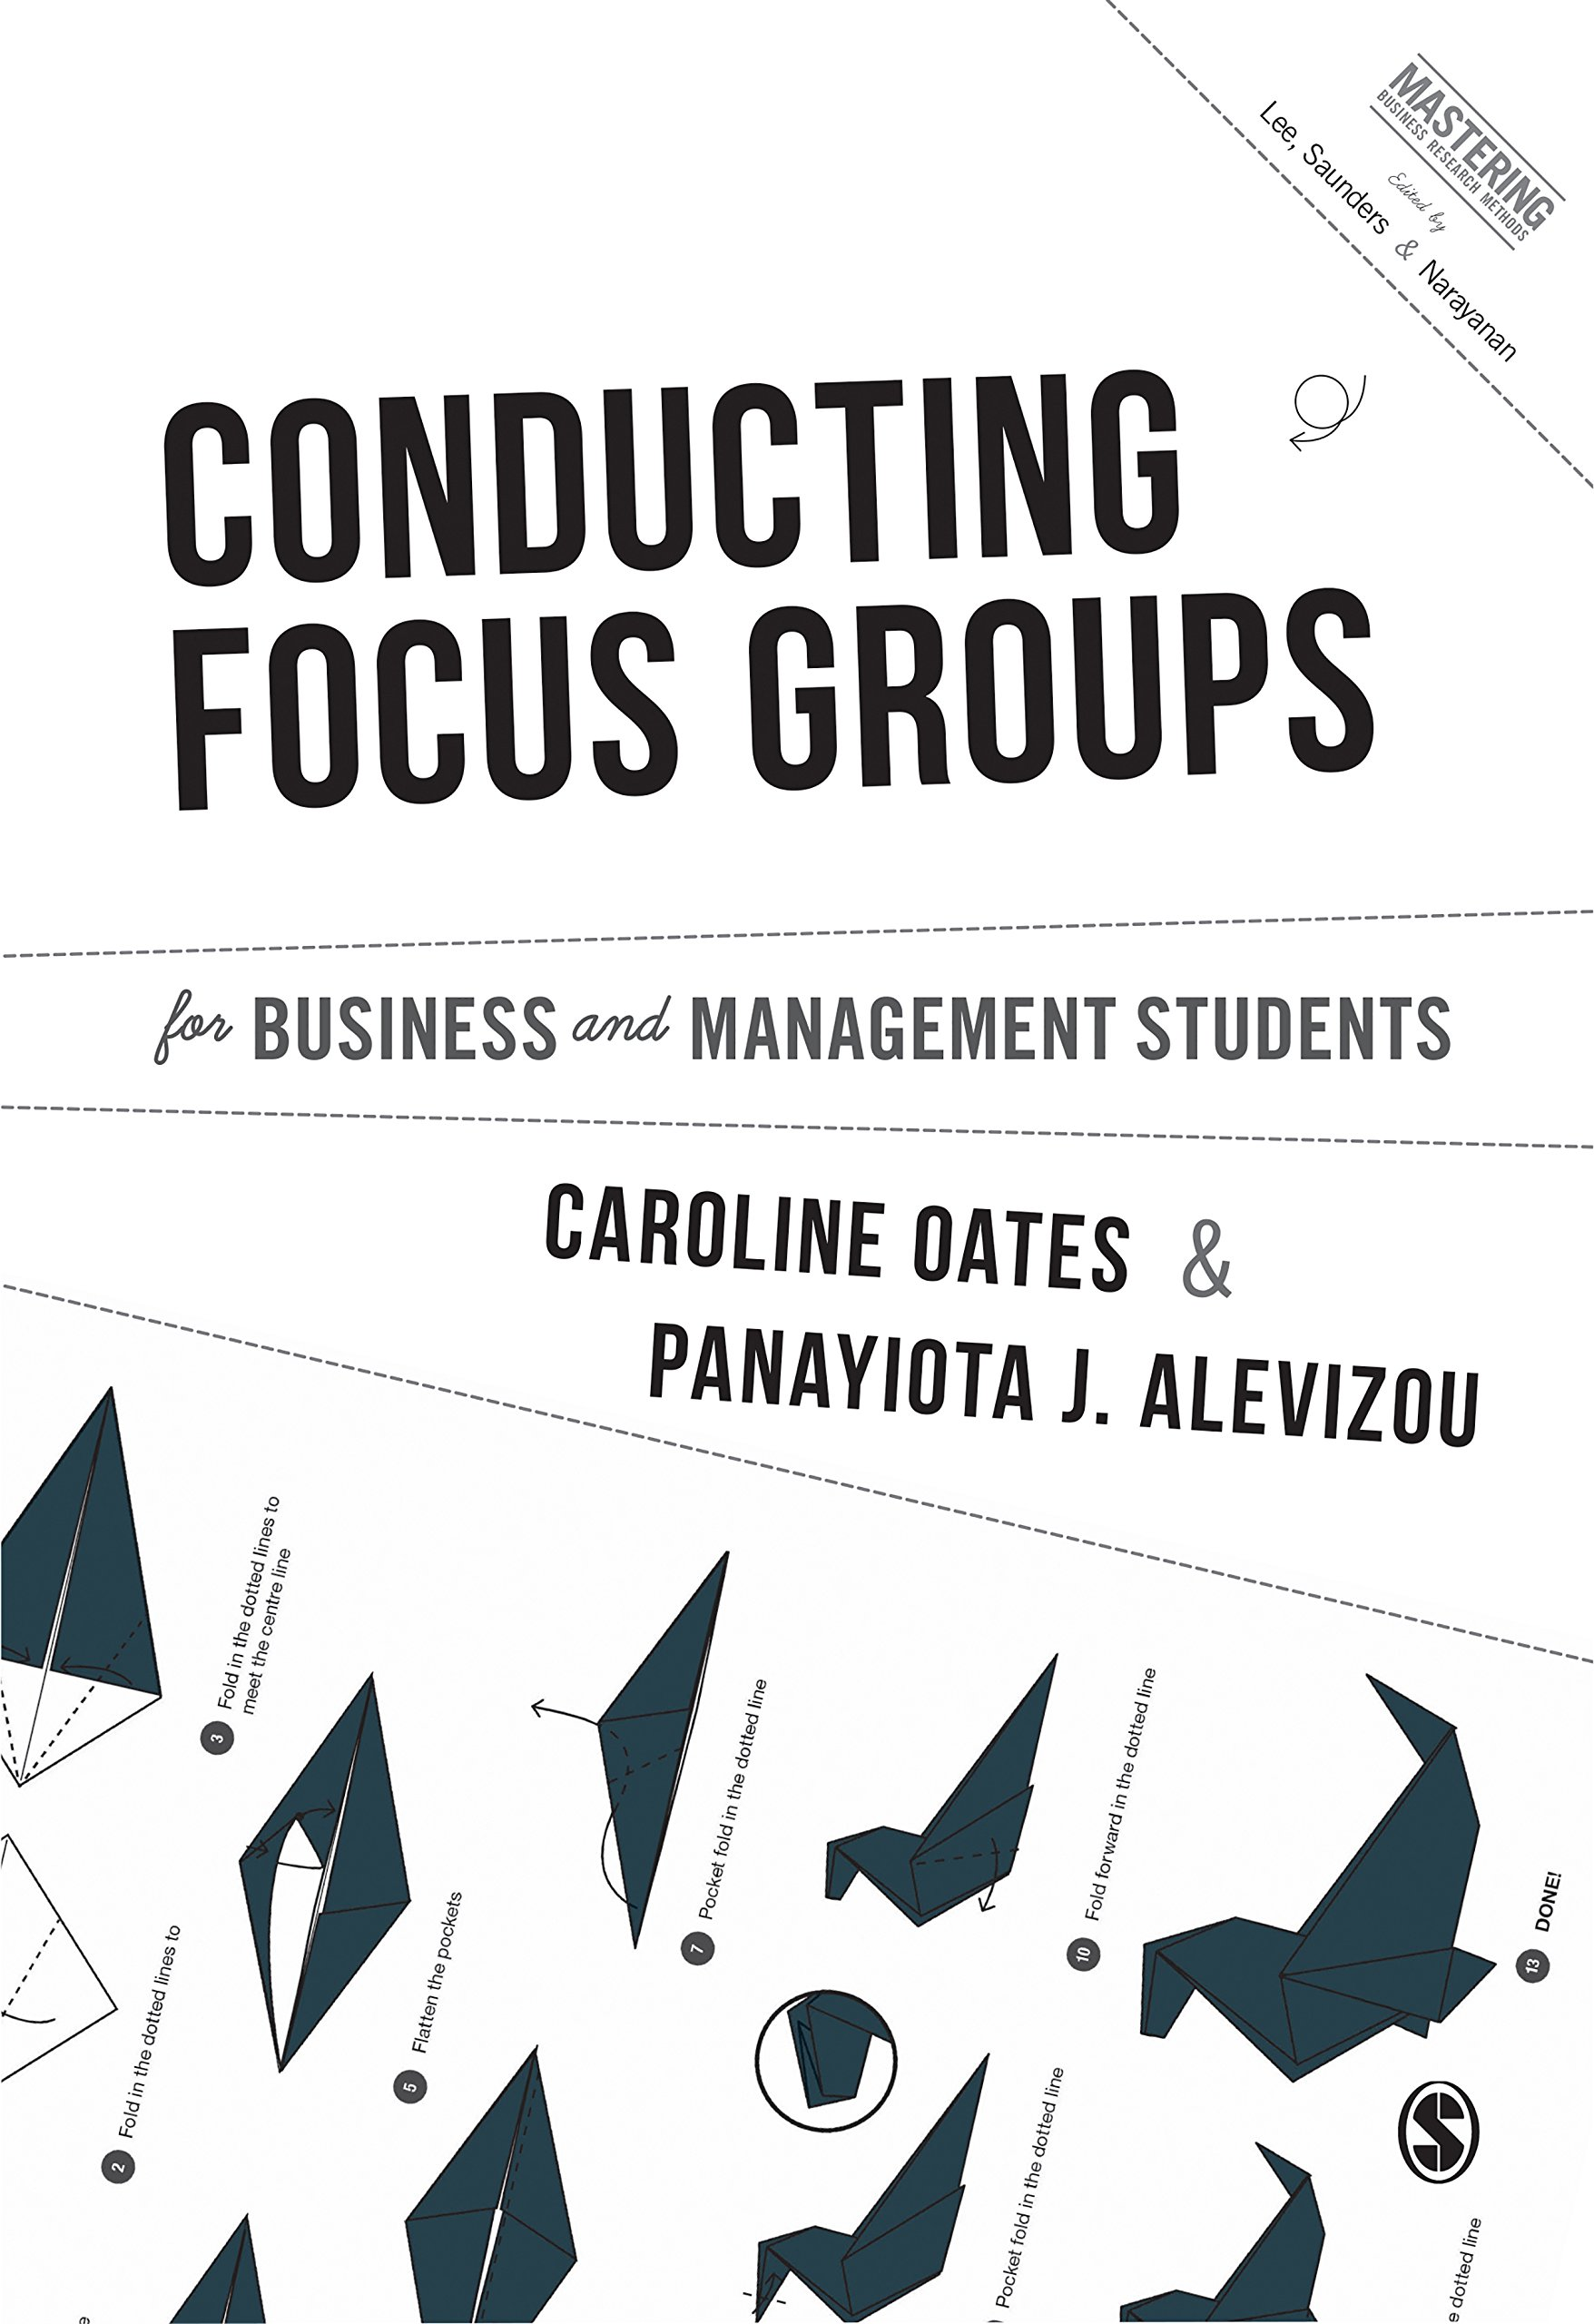 Conducting Focus Groups for Business and Management Students